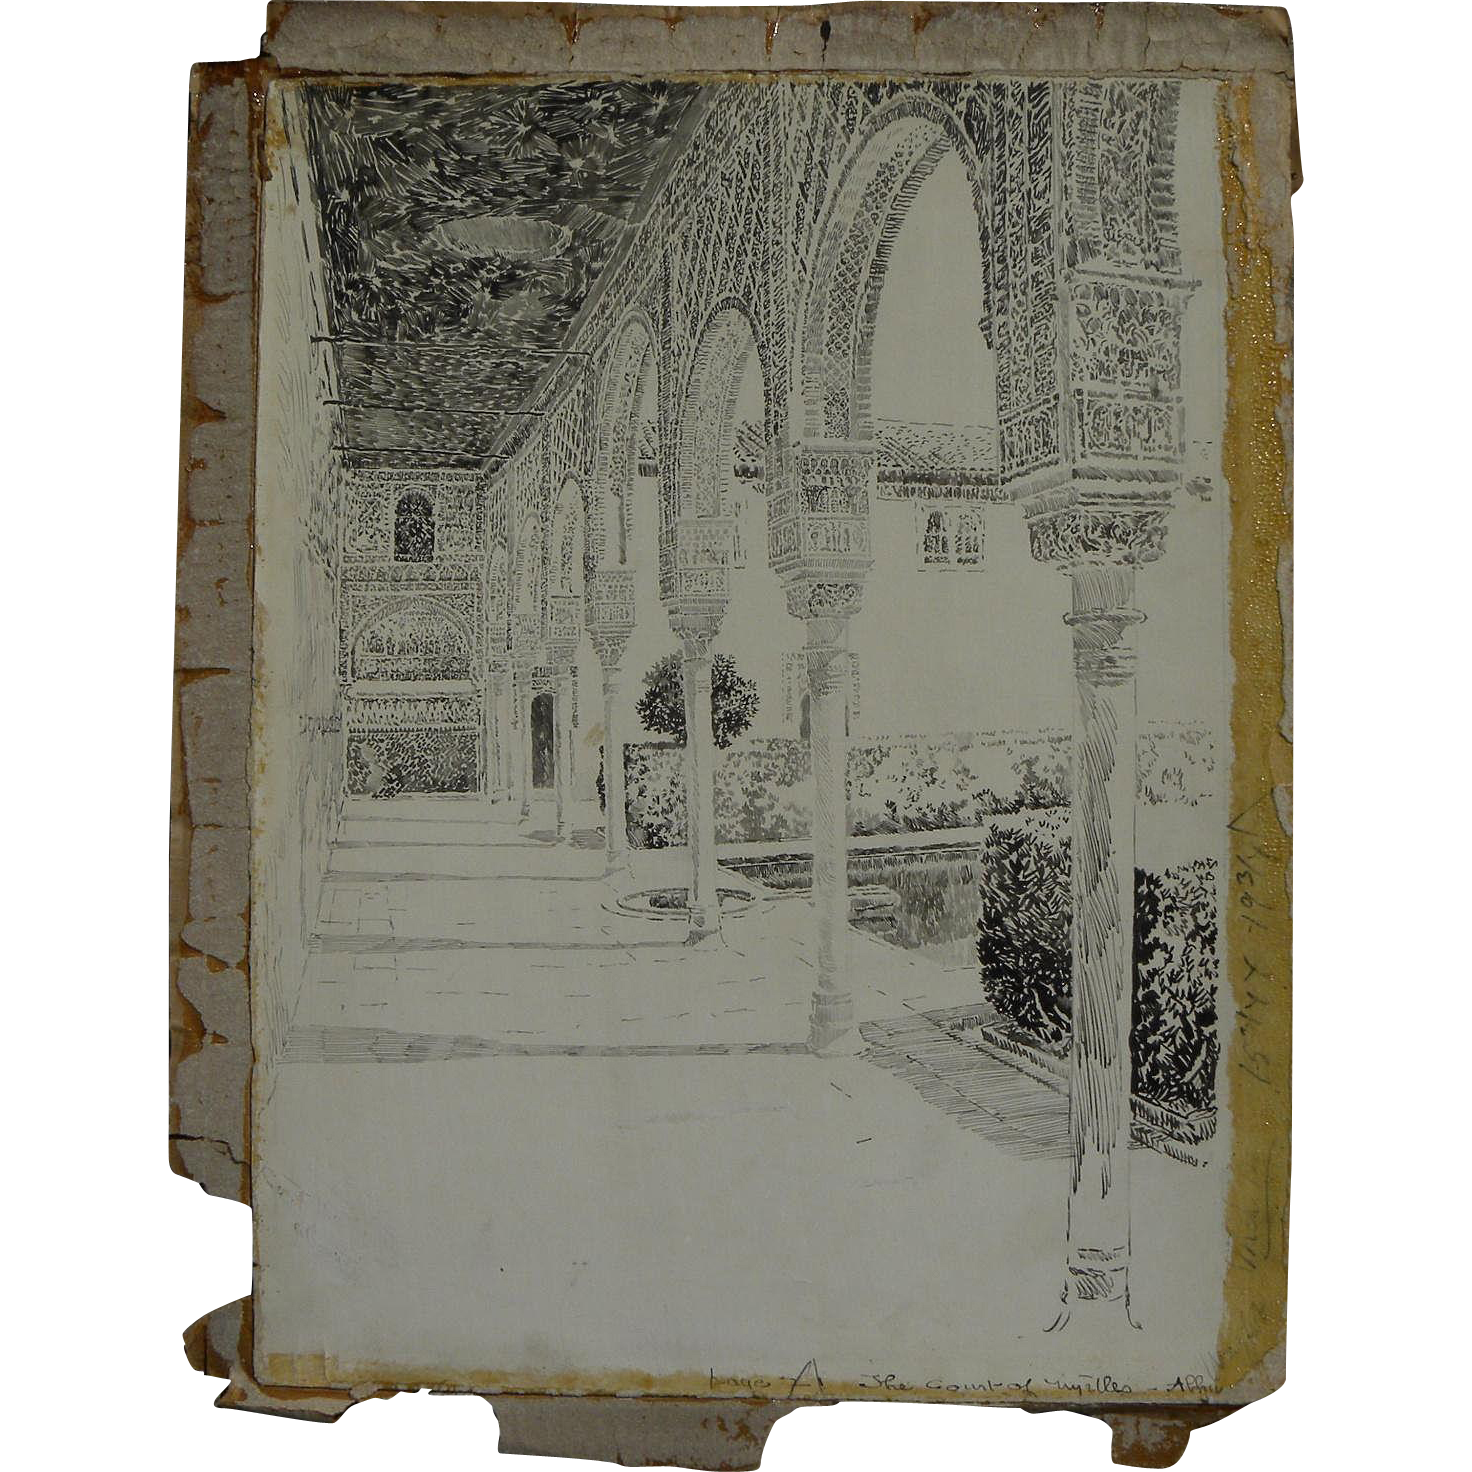 JOSEPH PENNELL (1857-1926) original 1896 published illustration drawing of the Alhambra by famous American printmaker and illustrator